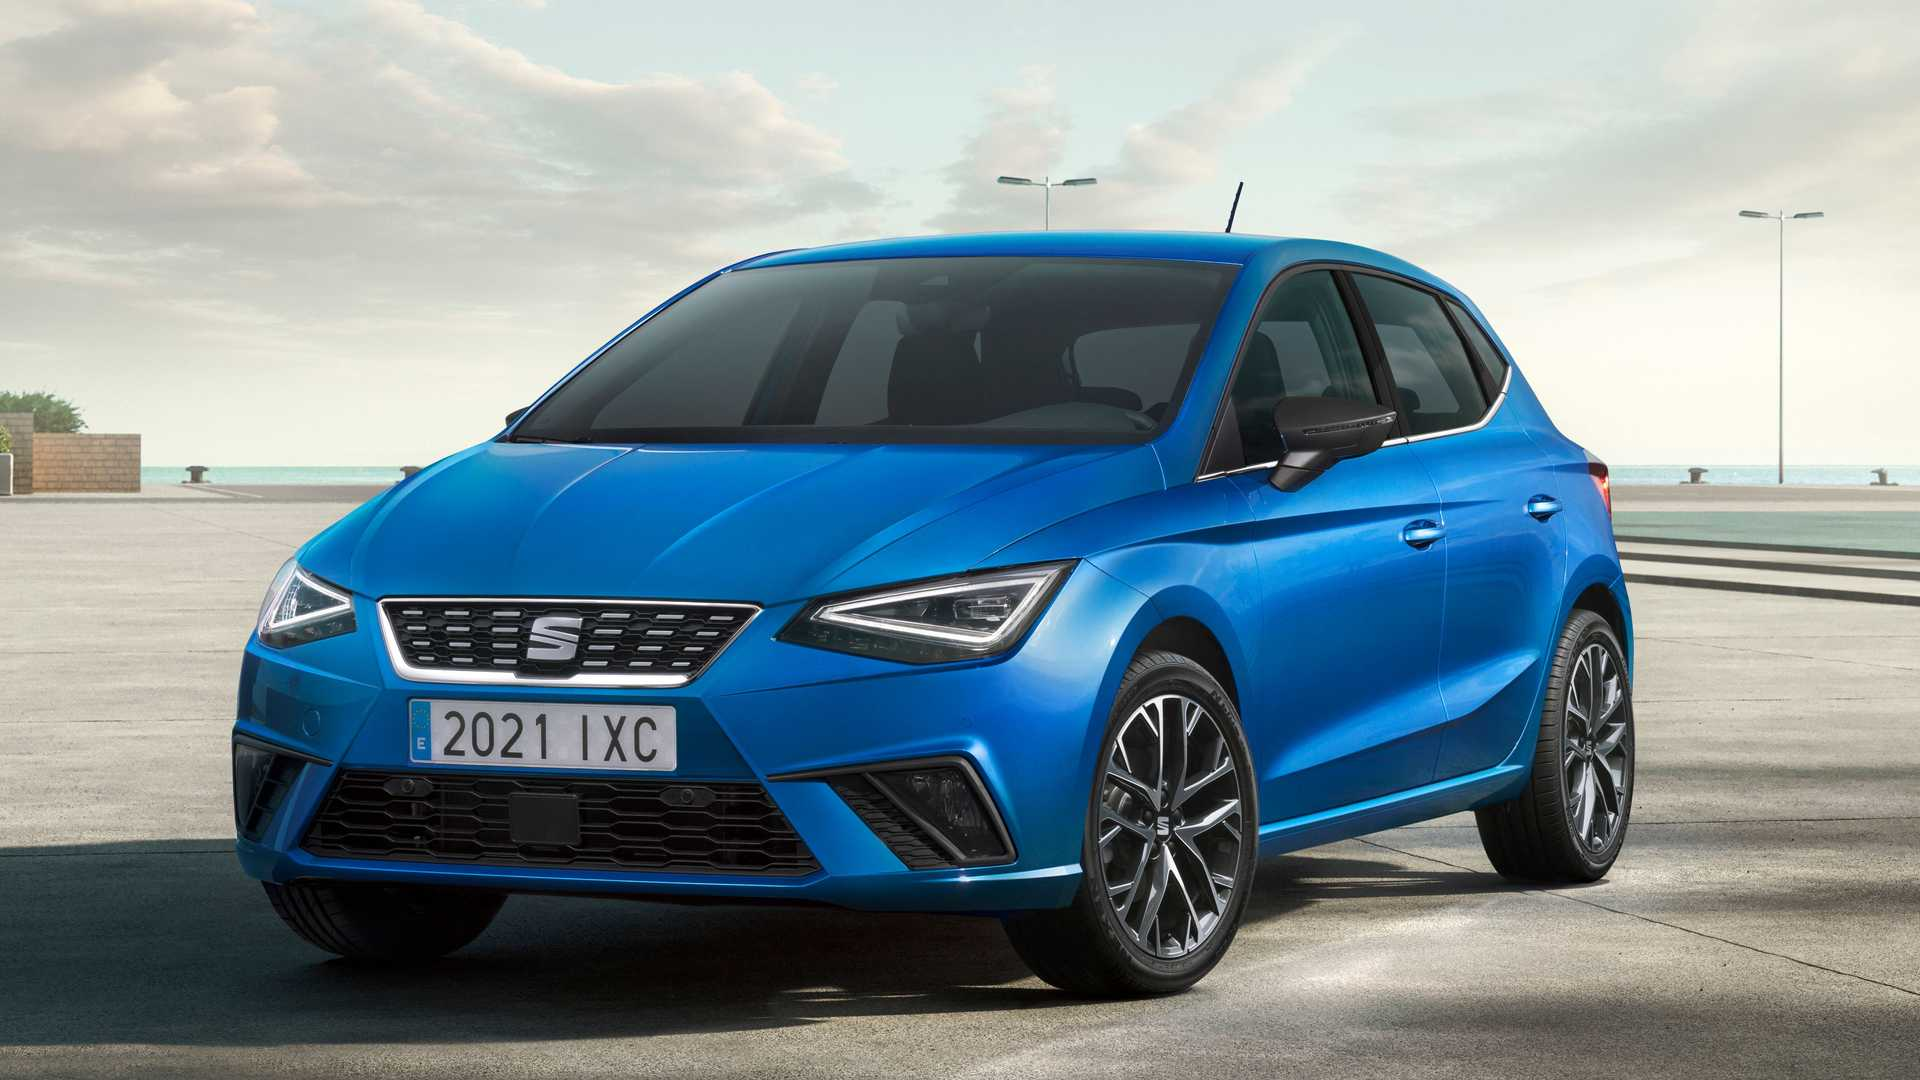 2021 SEAT Ibiza Facelift Debuts With More Tech And Styling Tweaks